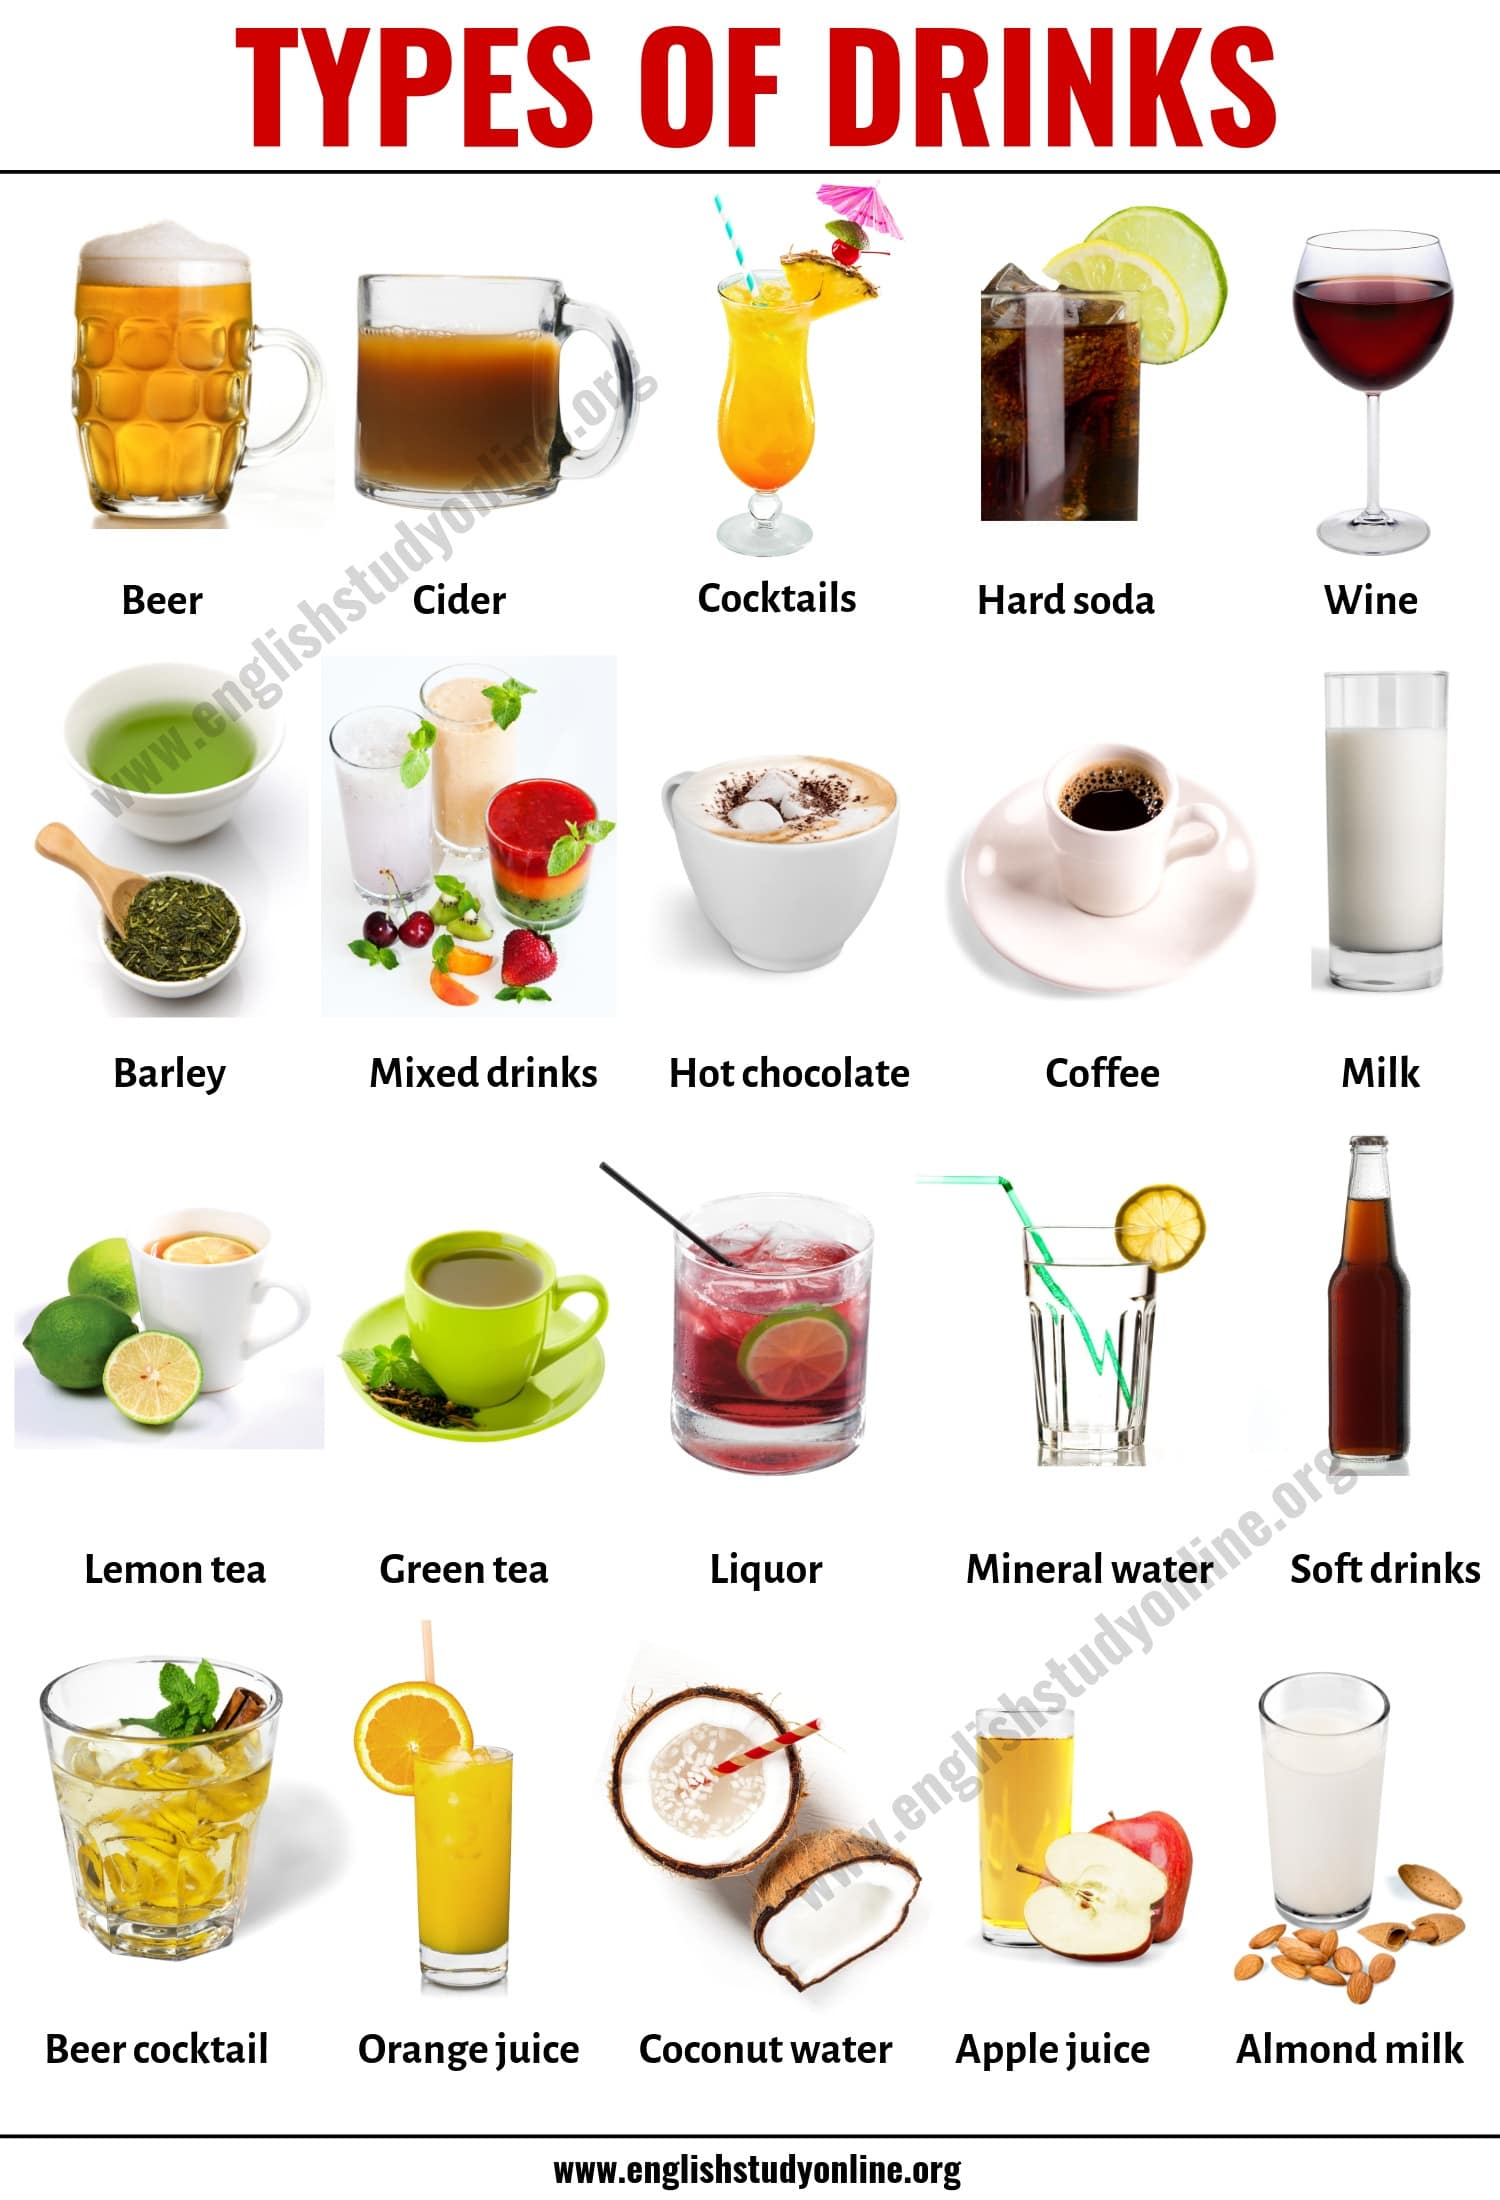 Types of Drinks